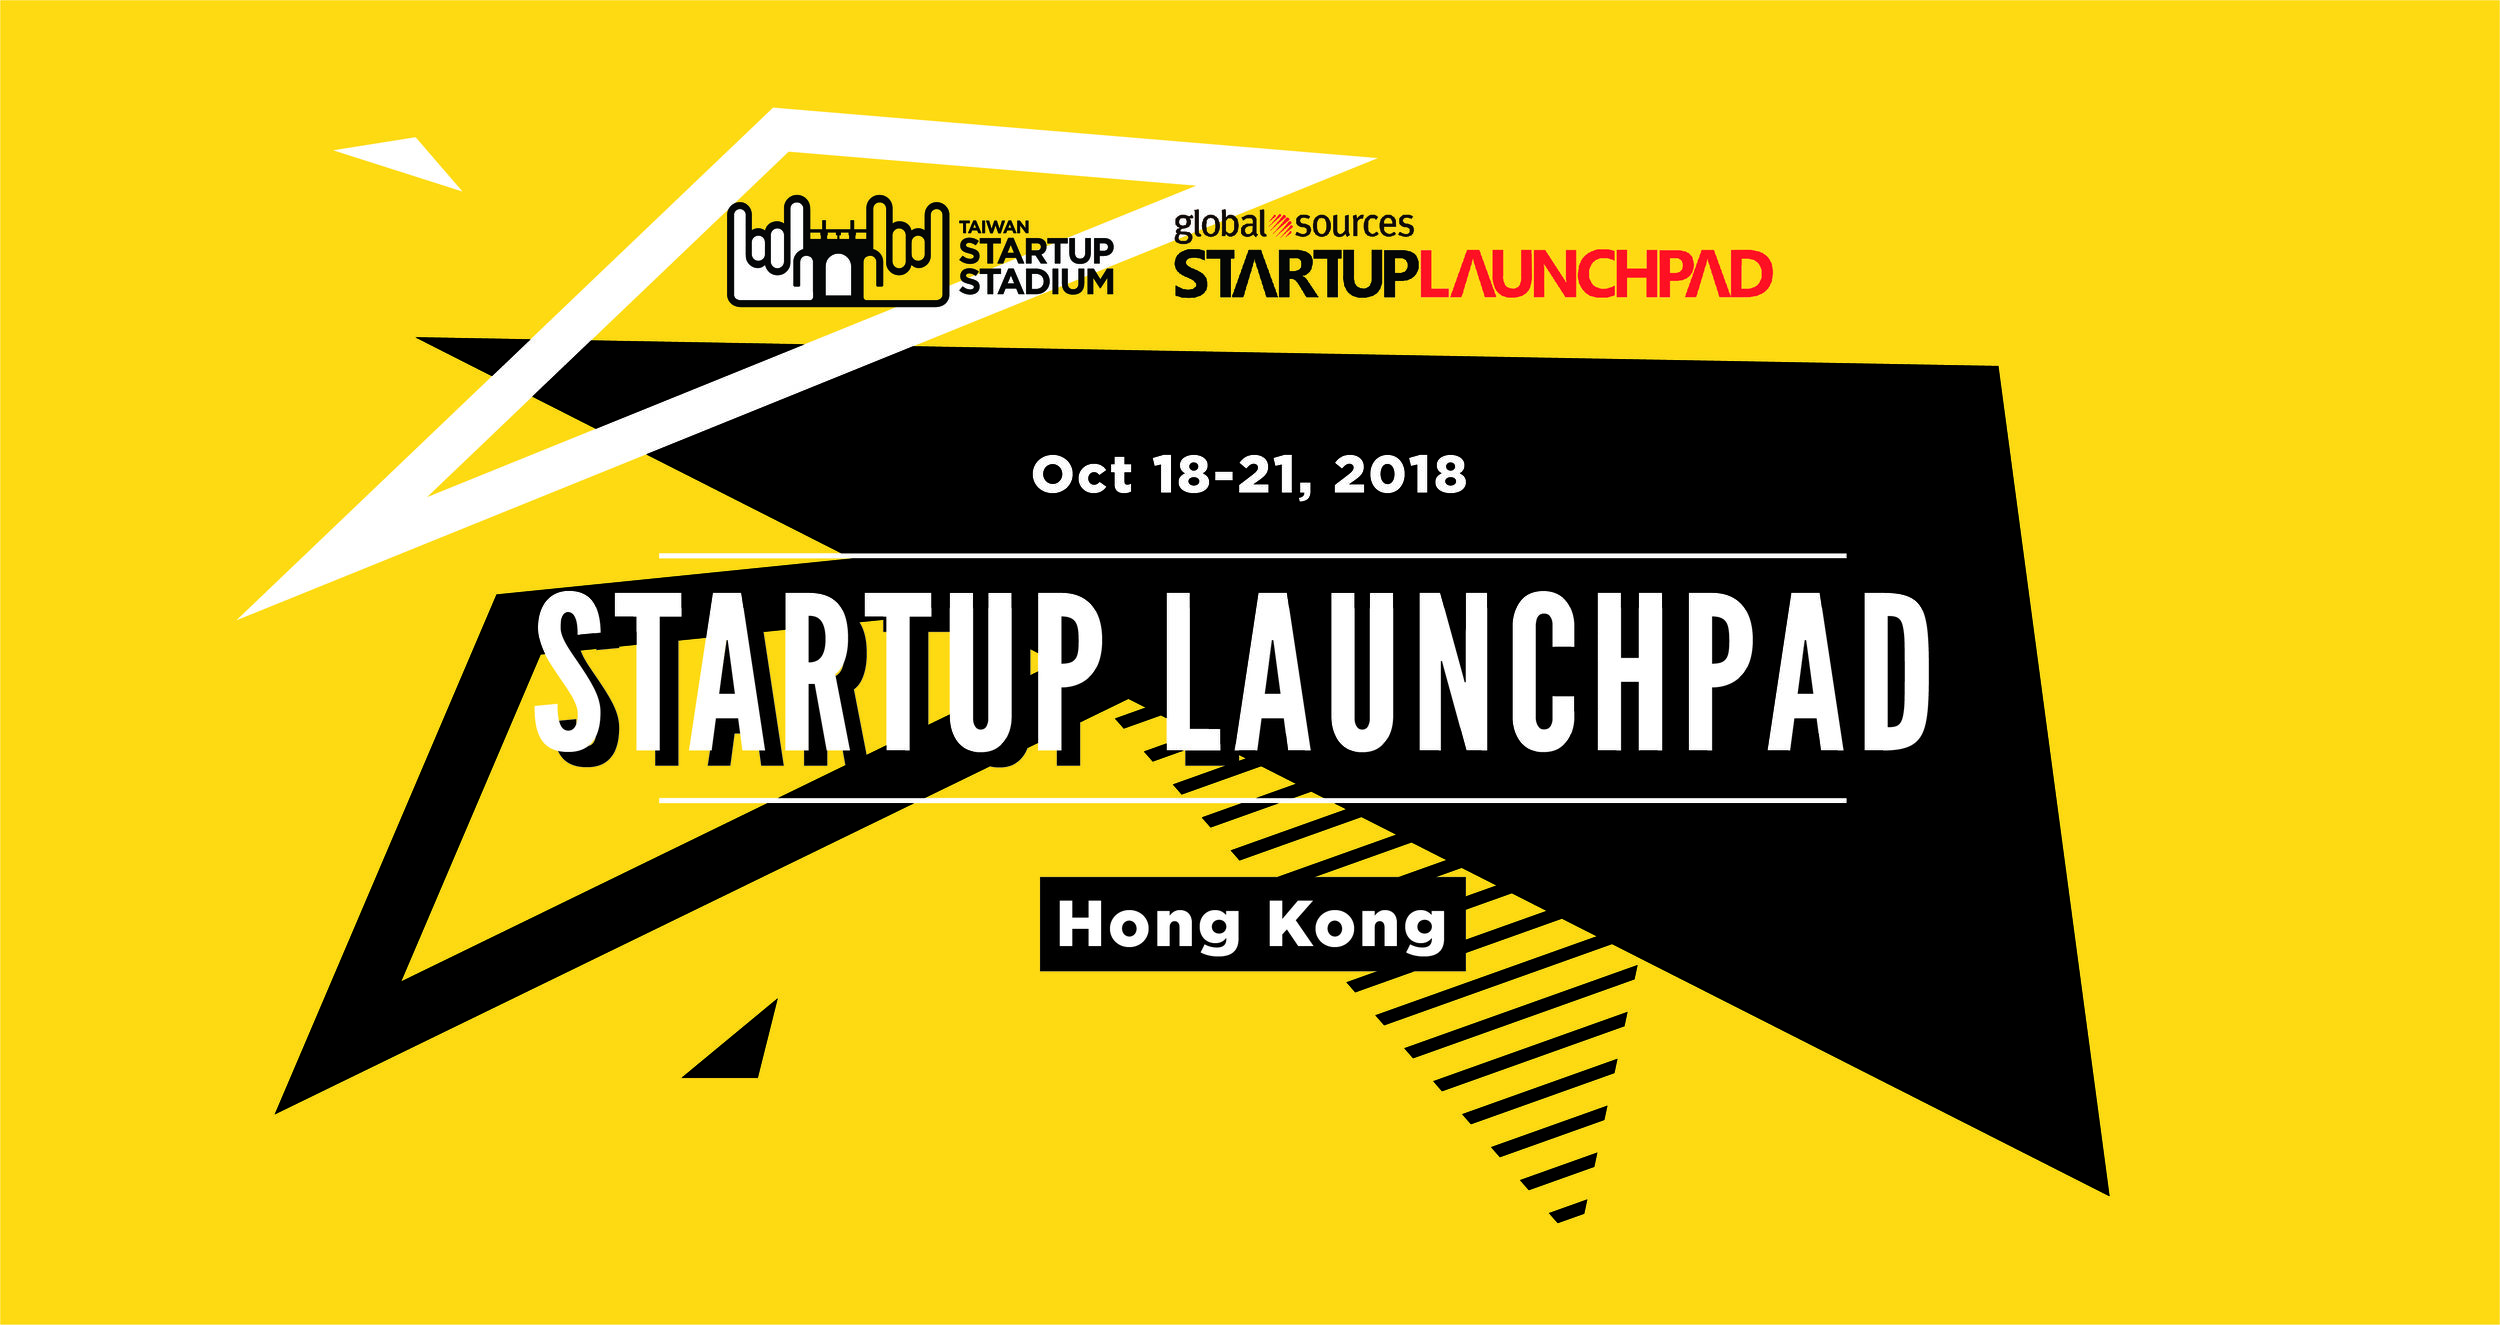 Taiwan-startup-stadium-globalsources-startup-launchpad-banner